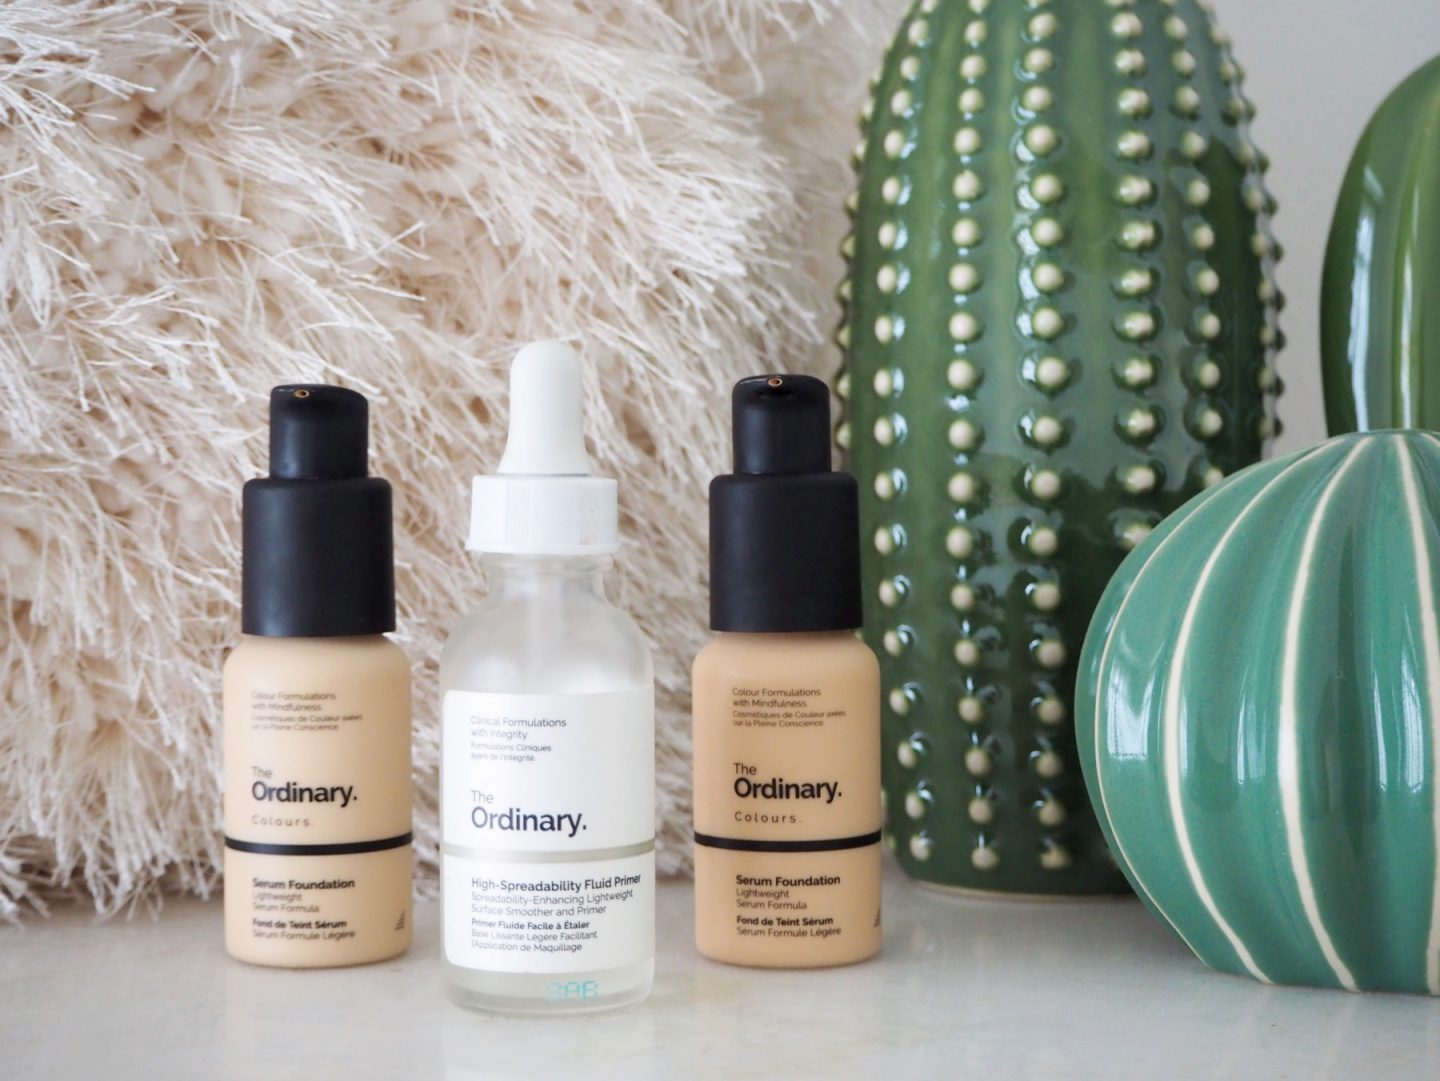 The Ordinary; The Affordable Products That Transformed My Skin - serum foundation & high-spreadability fluid primer